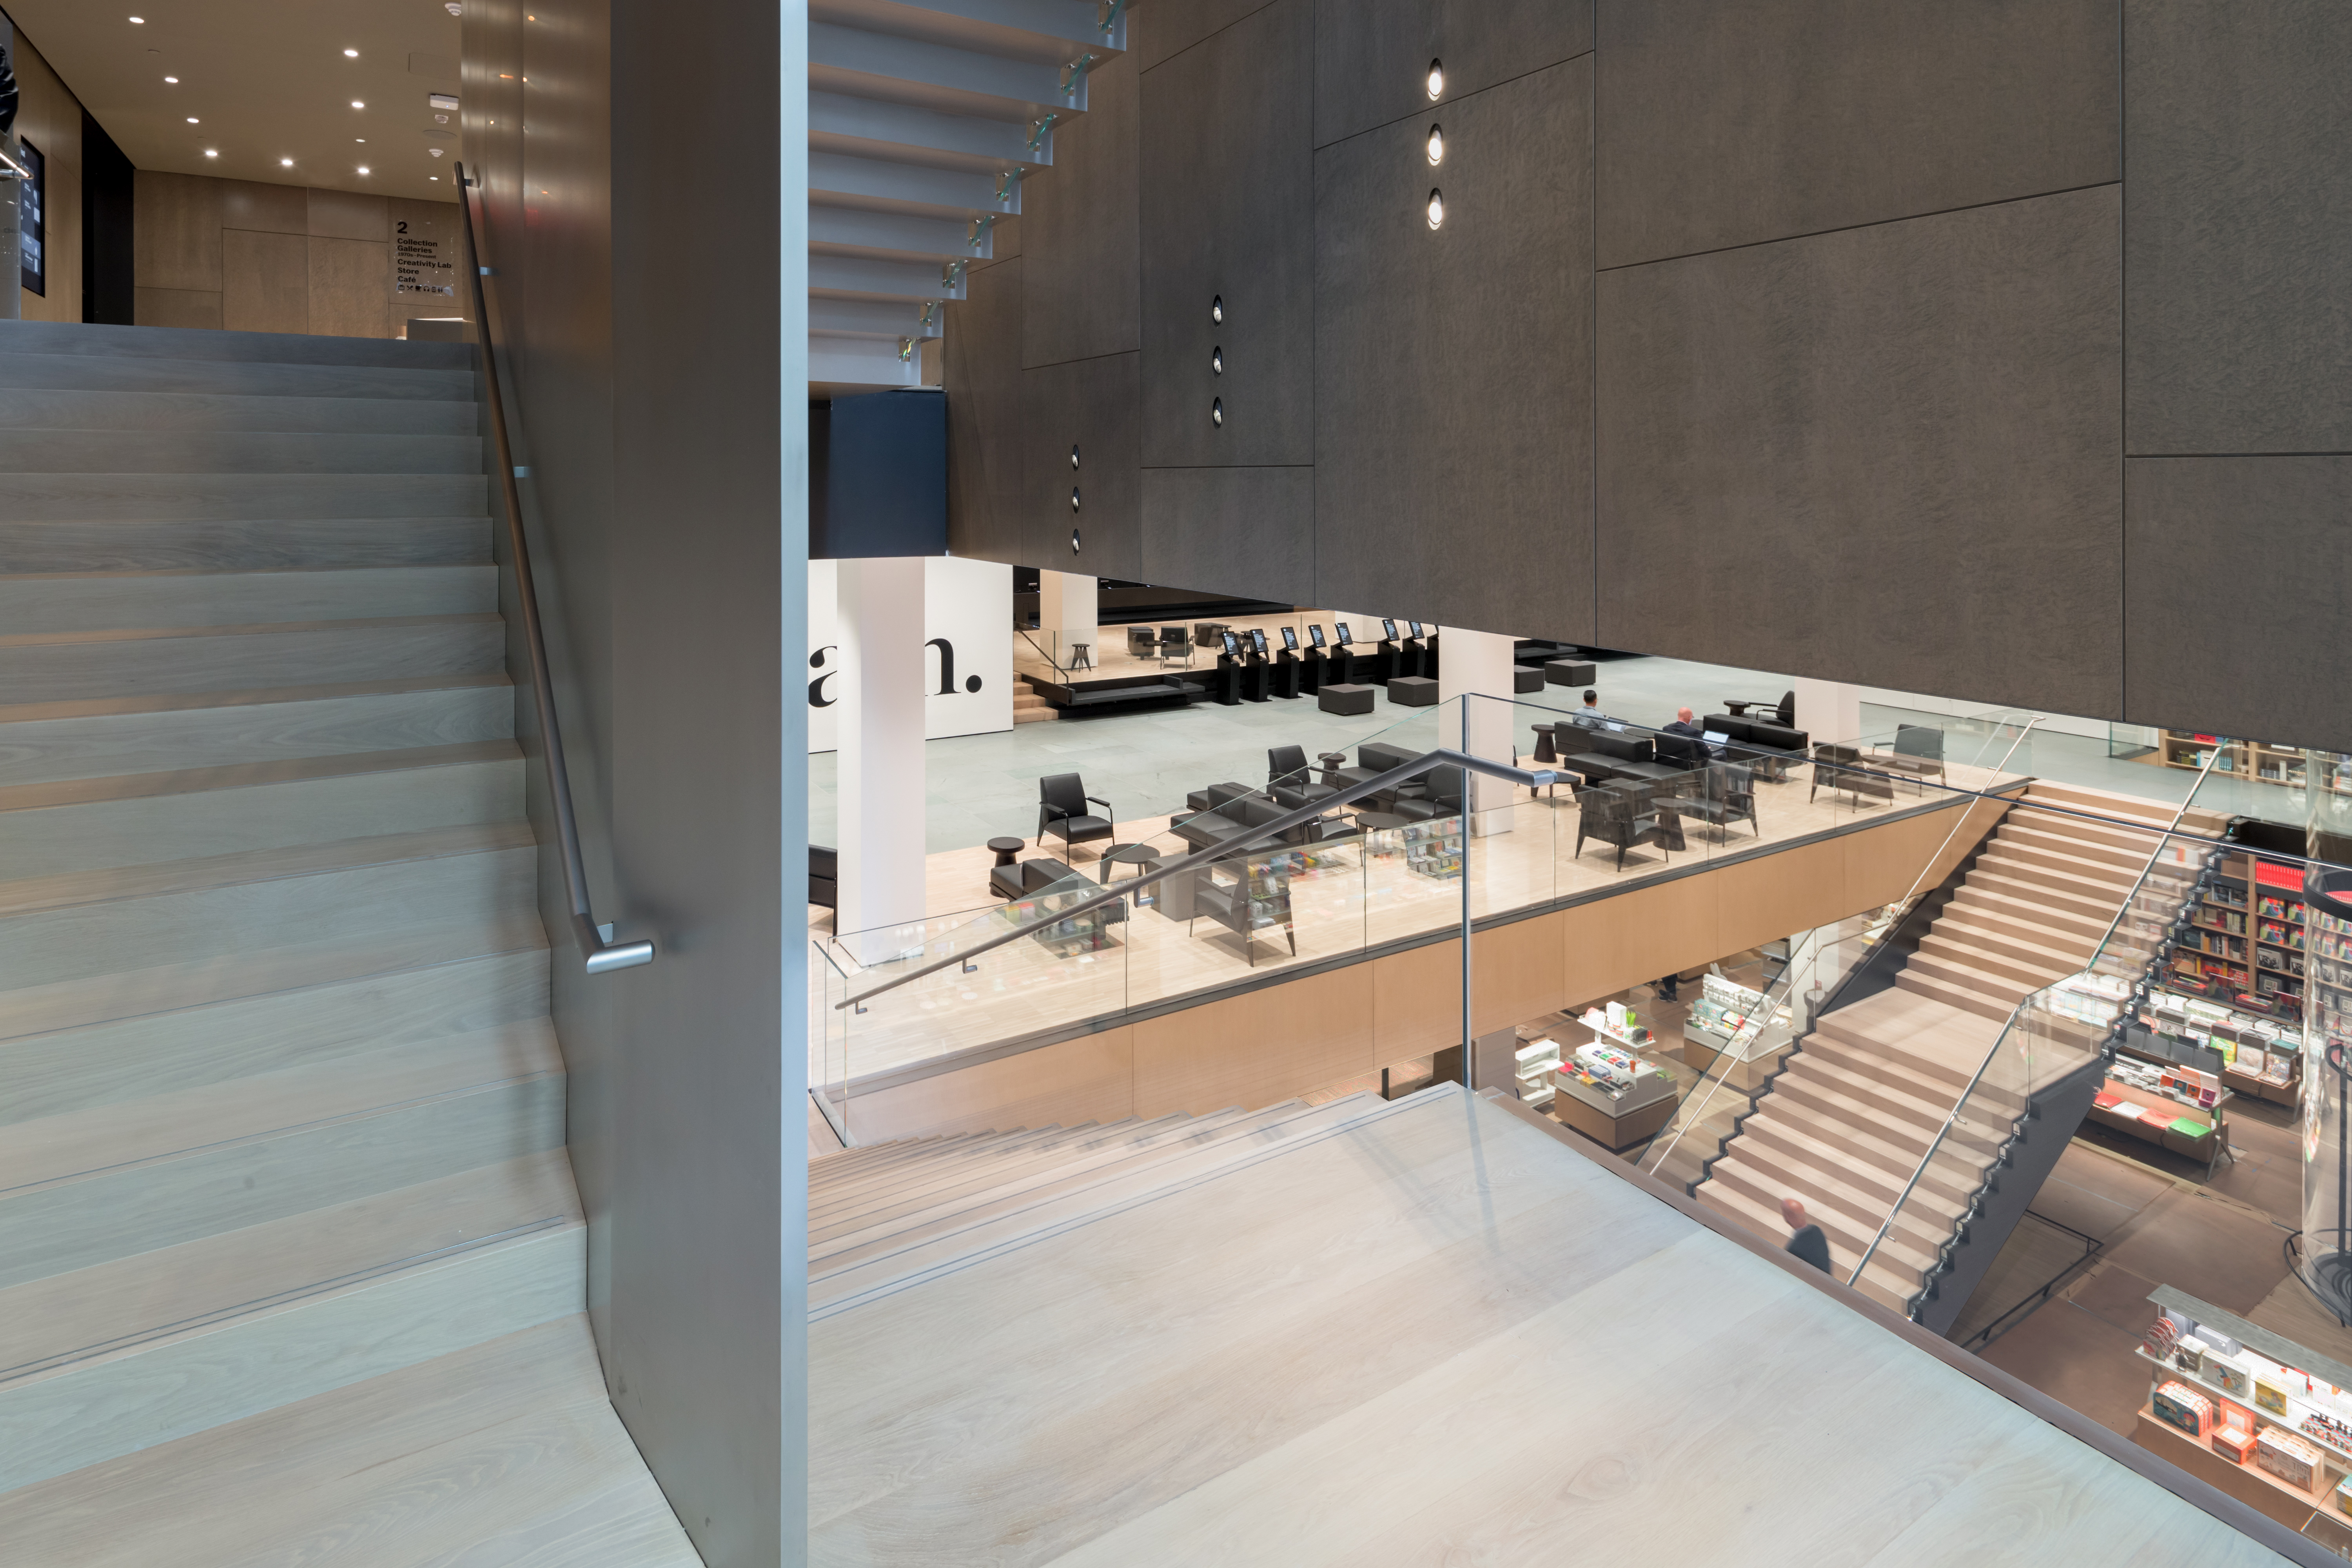 <p>MoMa Fase 2. Interior view of The Museum of Modern Art, Blade Stair and Retail Stair Beeld Iwan Baan. Courtesey of MoMa</p>